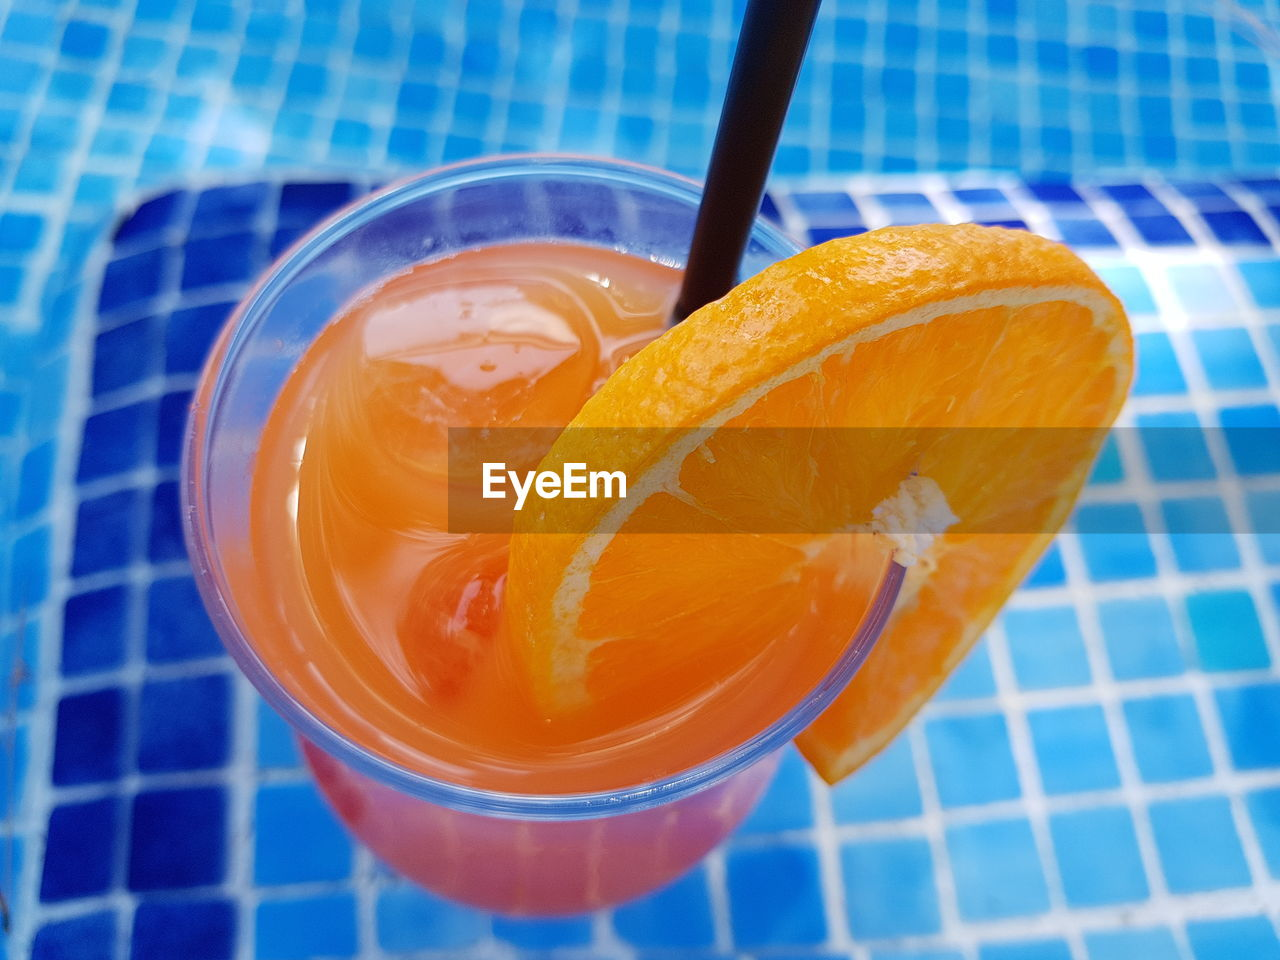 food and drink, food, healthy eating, fruit, wellbeing, freshness, drink, glass, refreshment, orange color, drinking straw, high angle view, still life, close-up, slice, straw, orange - fruit, no people, drinking glass, citrus fruit, orange, swimming pool